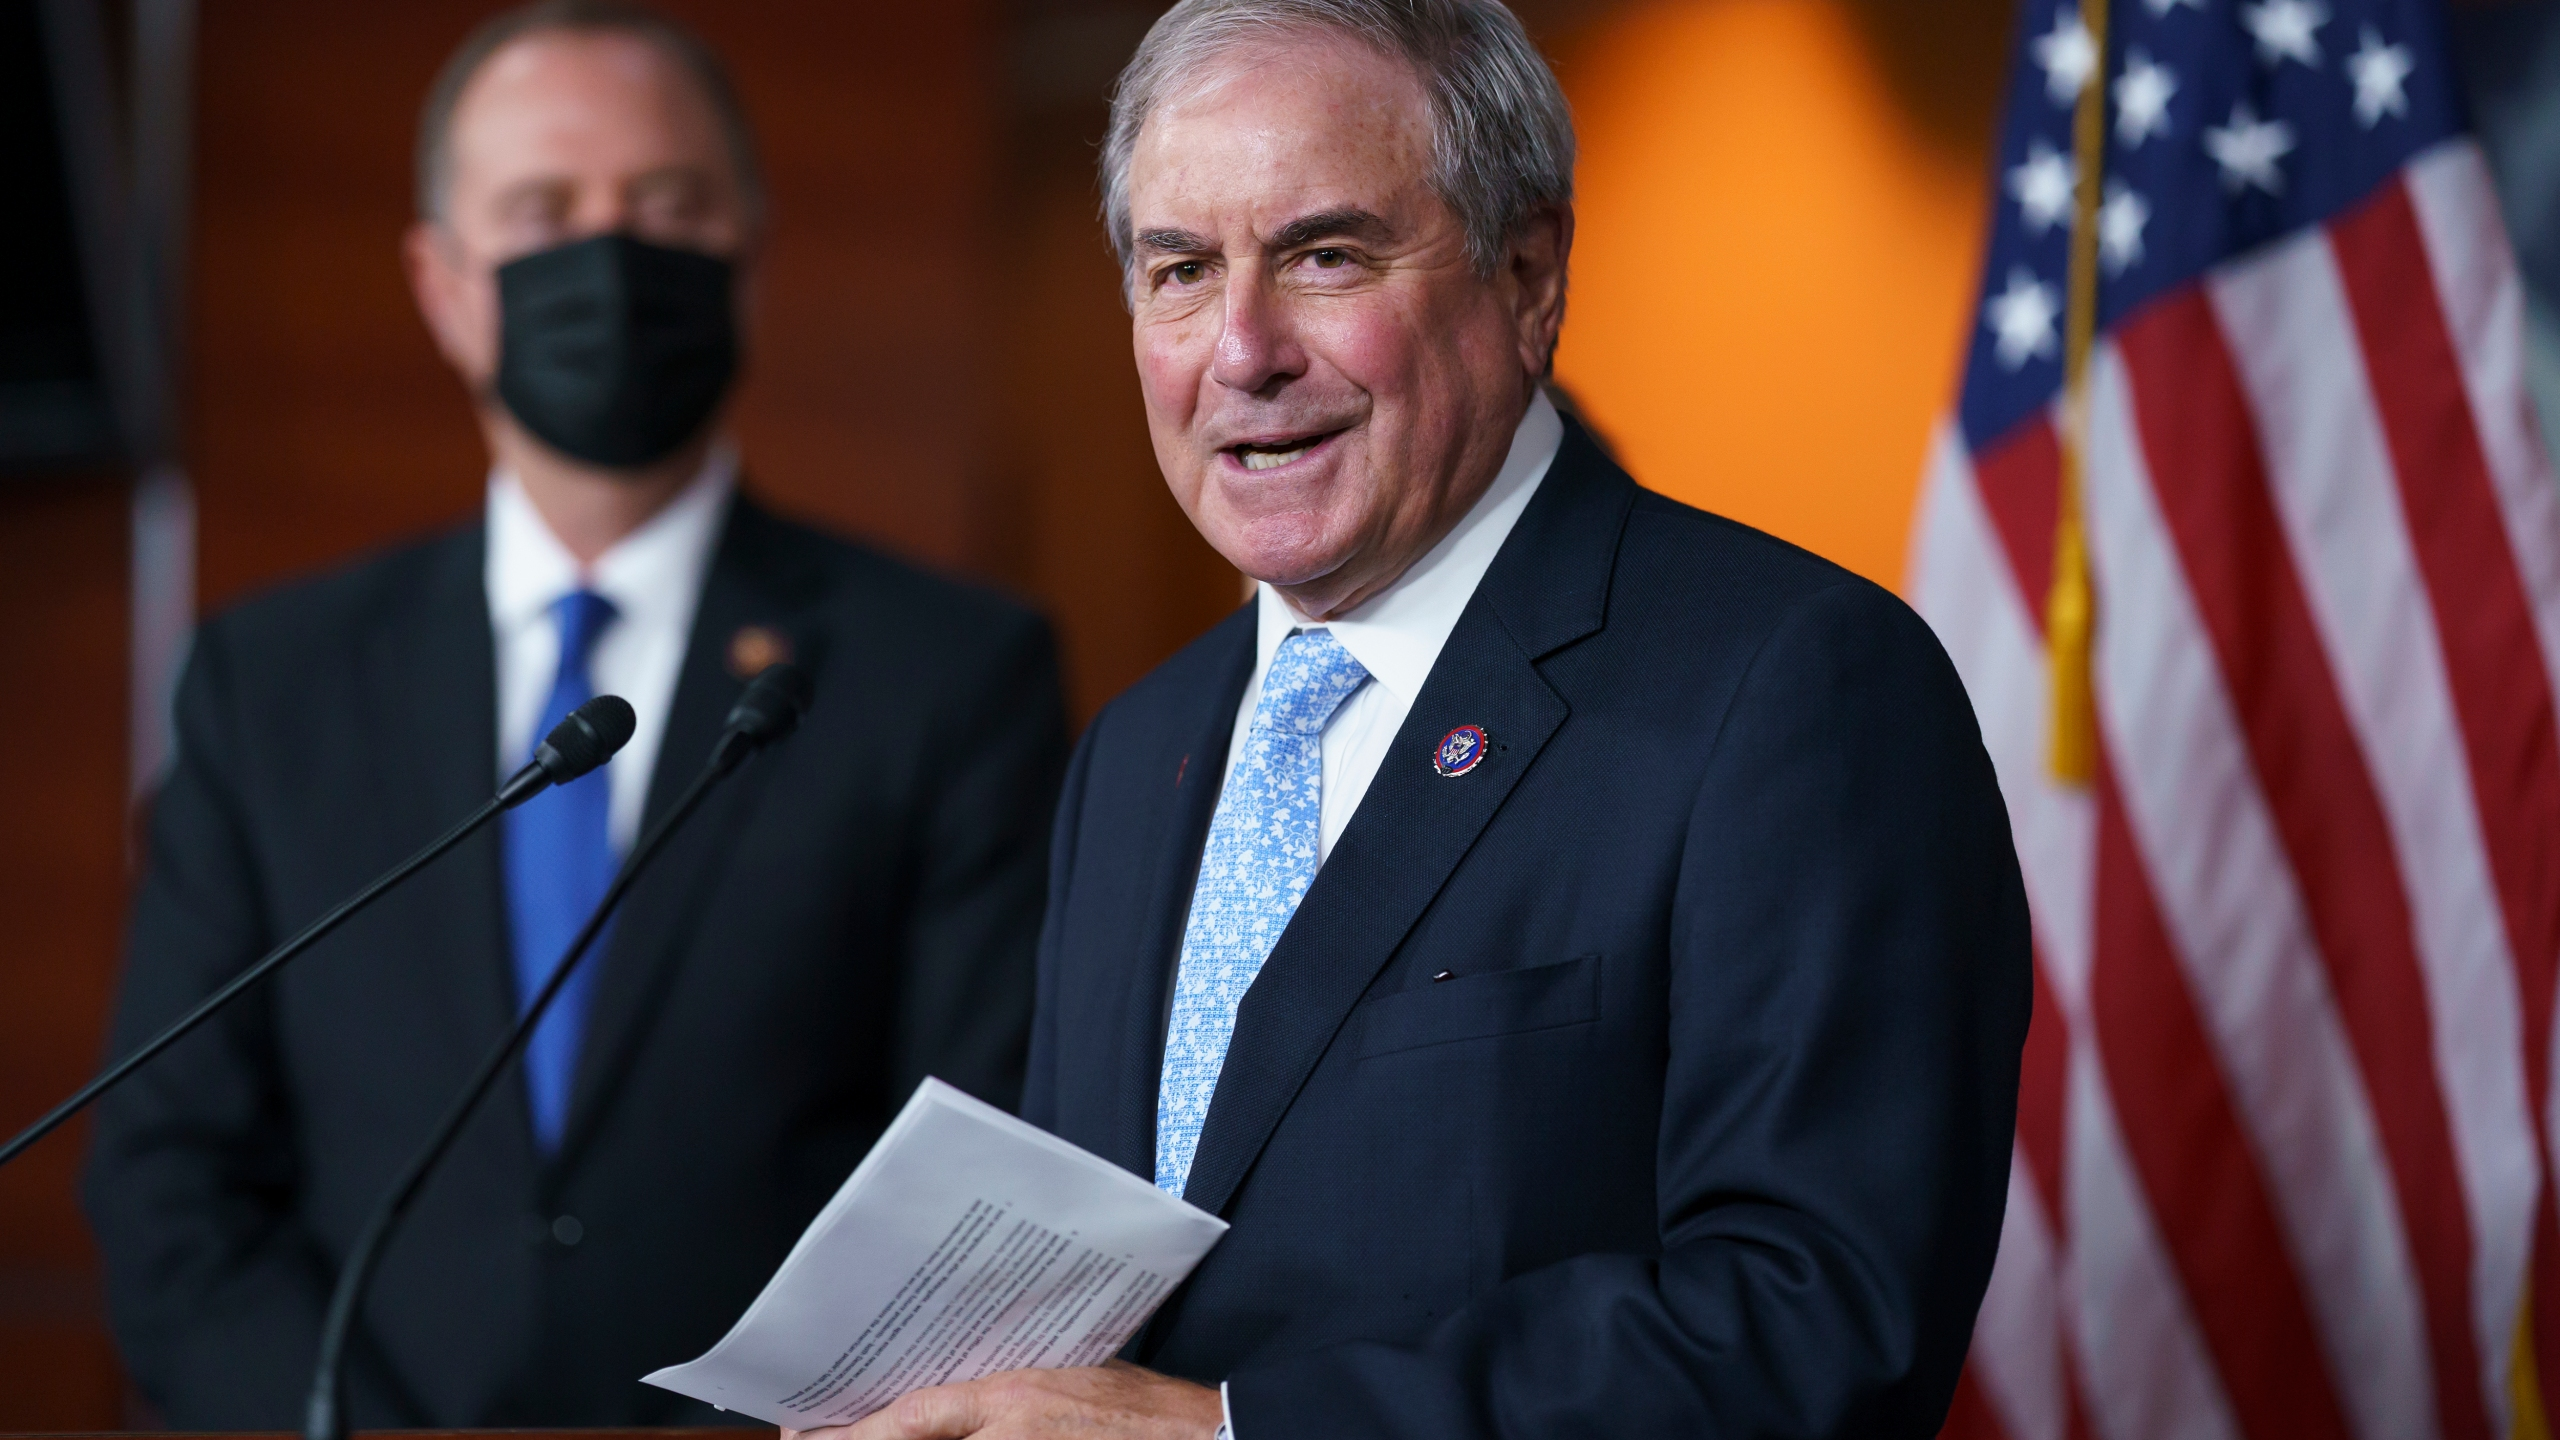 In this Sept. 21, 2021, file photo House Budget Committee Chair John Yarmuth, D-Ky., joined at left by House Intelligence Committee Chairman Adam Schiff, D-Calif., talks to reporters at the Capitol in Washington. (AP Photo/J. Scott Applewhite)